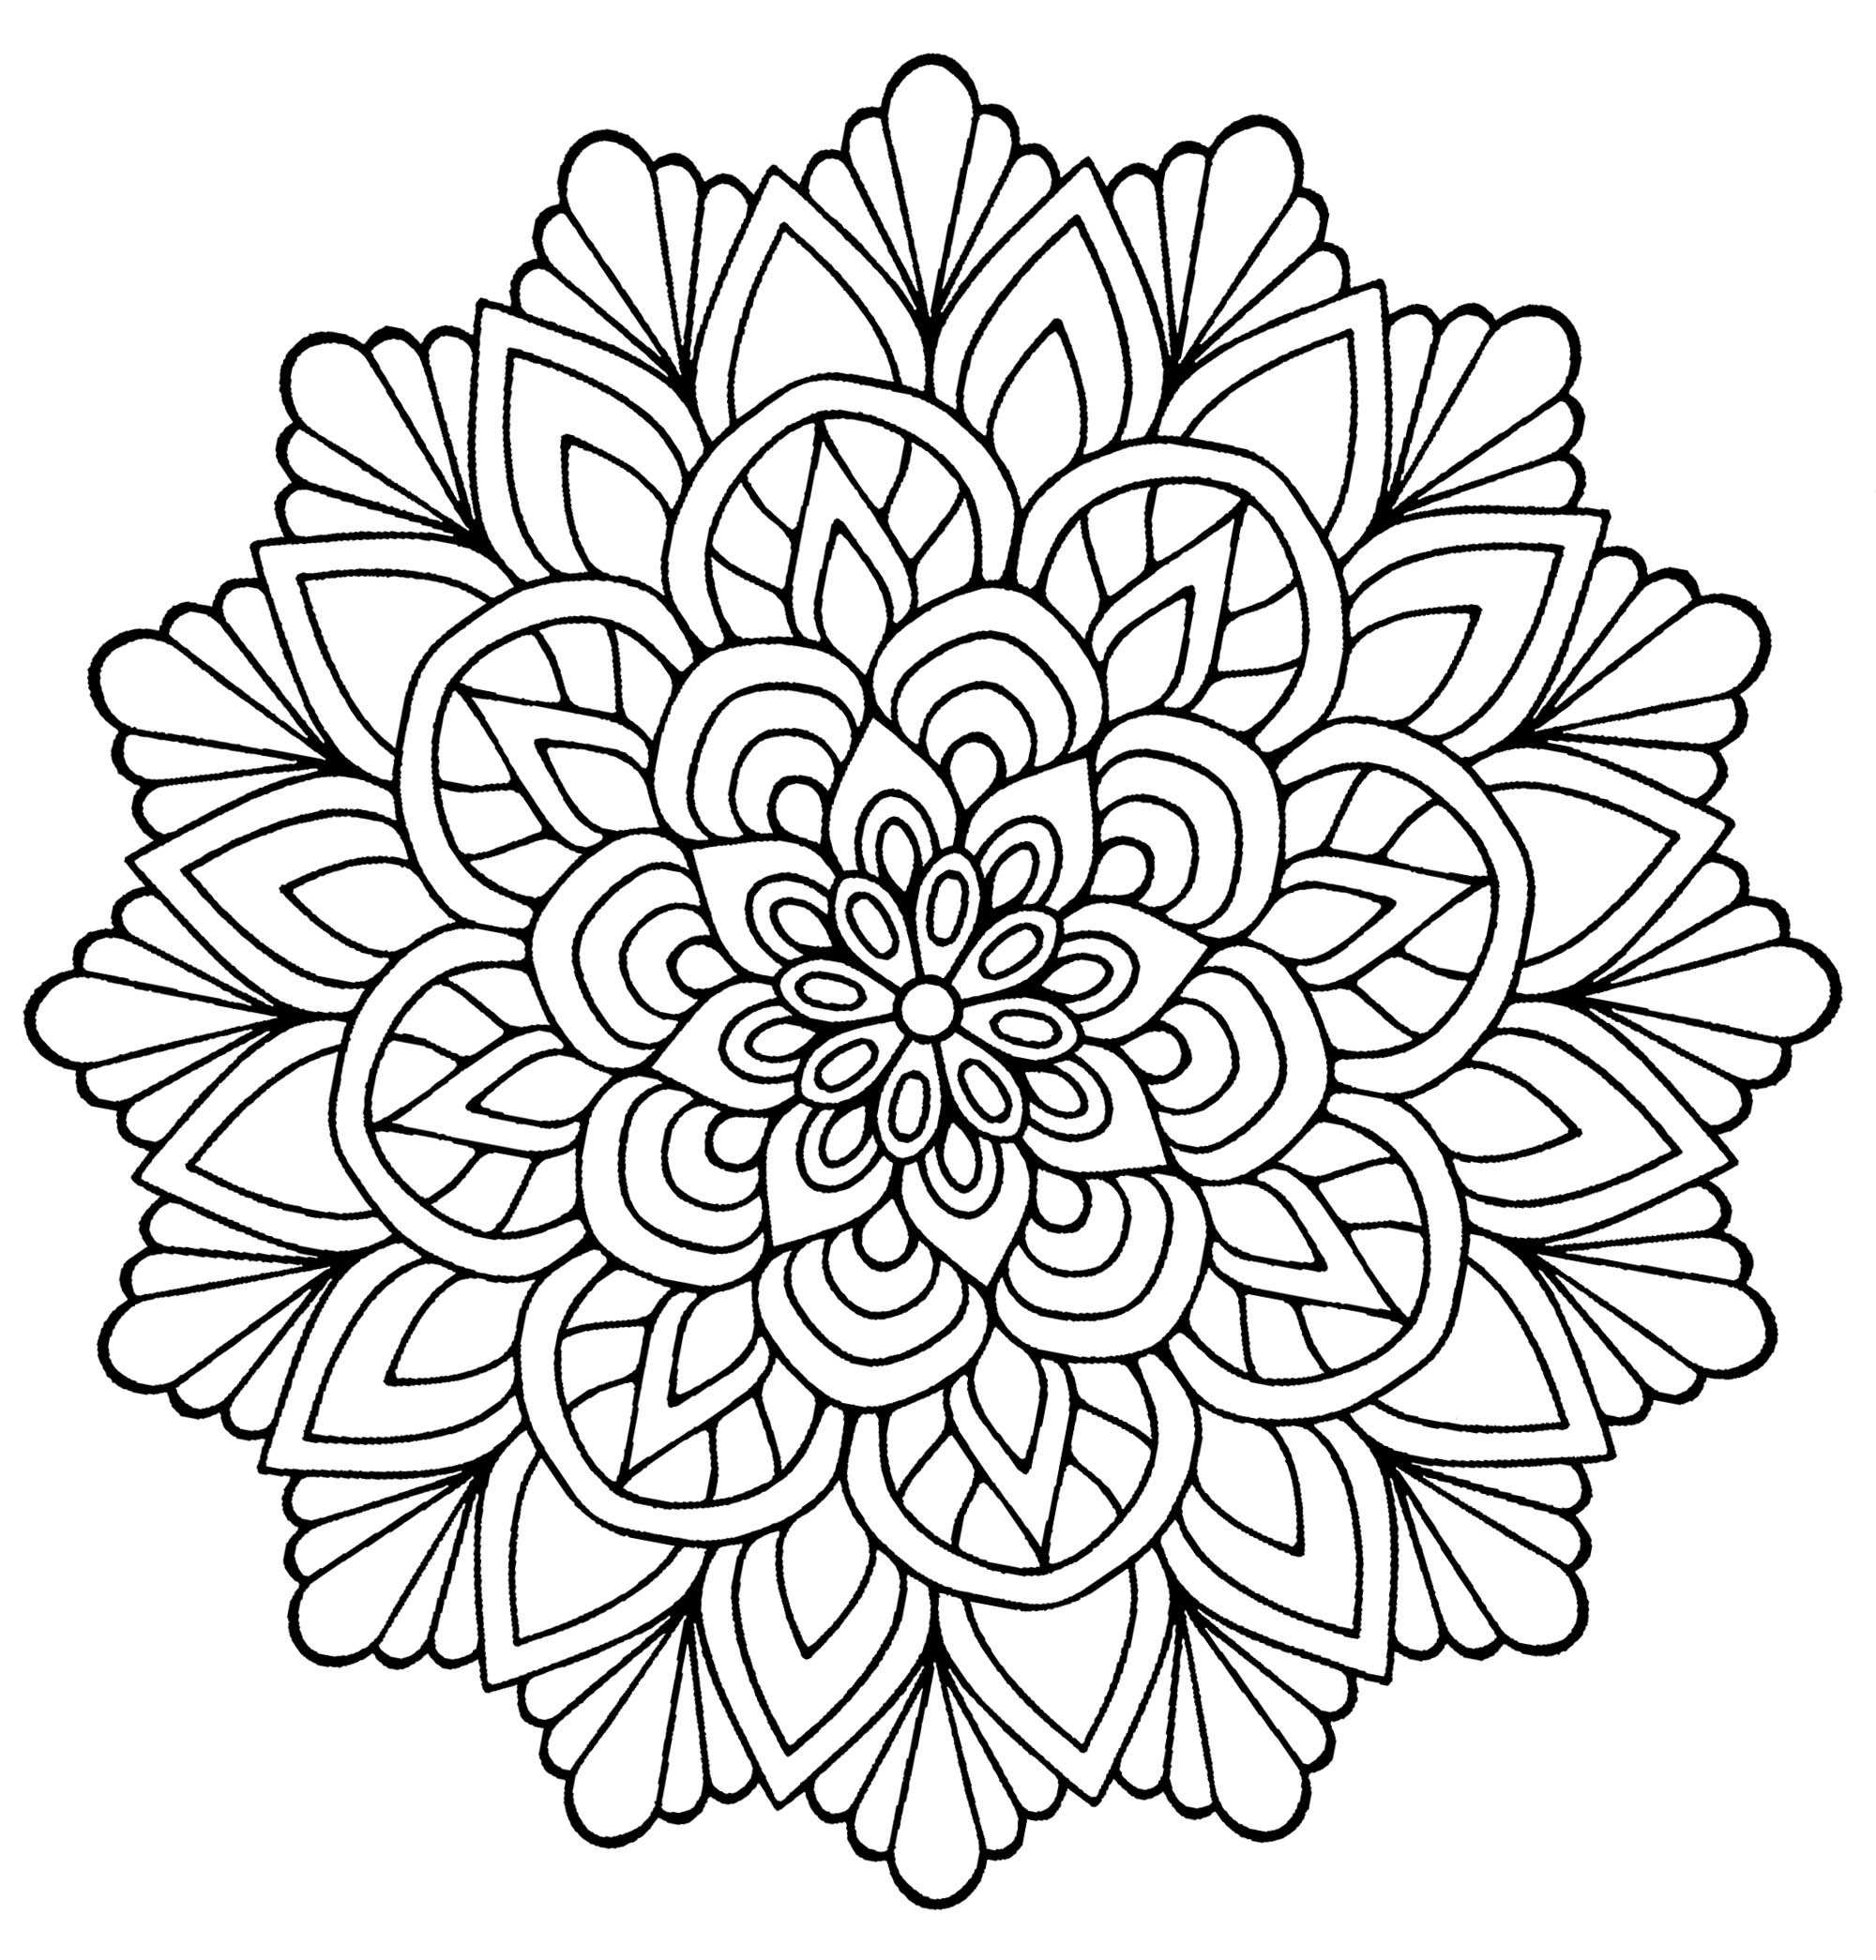 coloring mandala with color mandala zentagle inspired illustration black and white mandala coloring color with